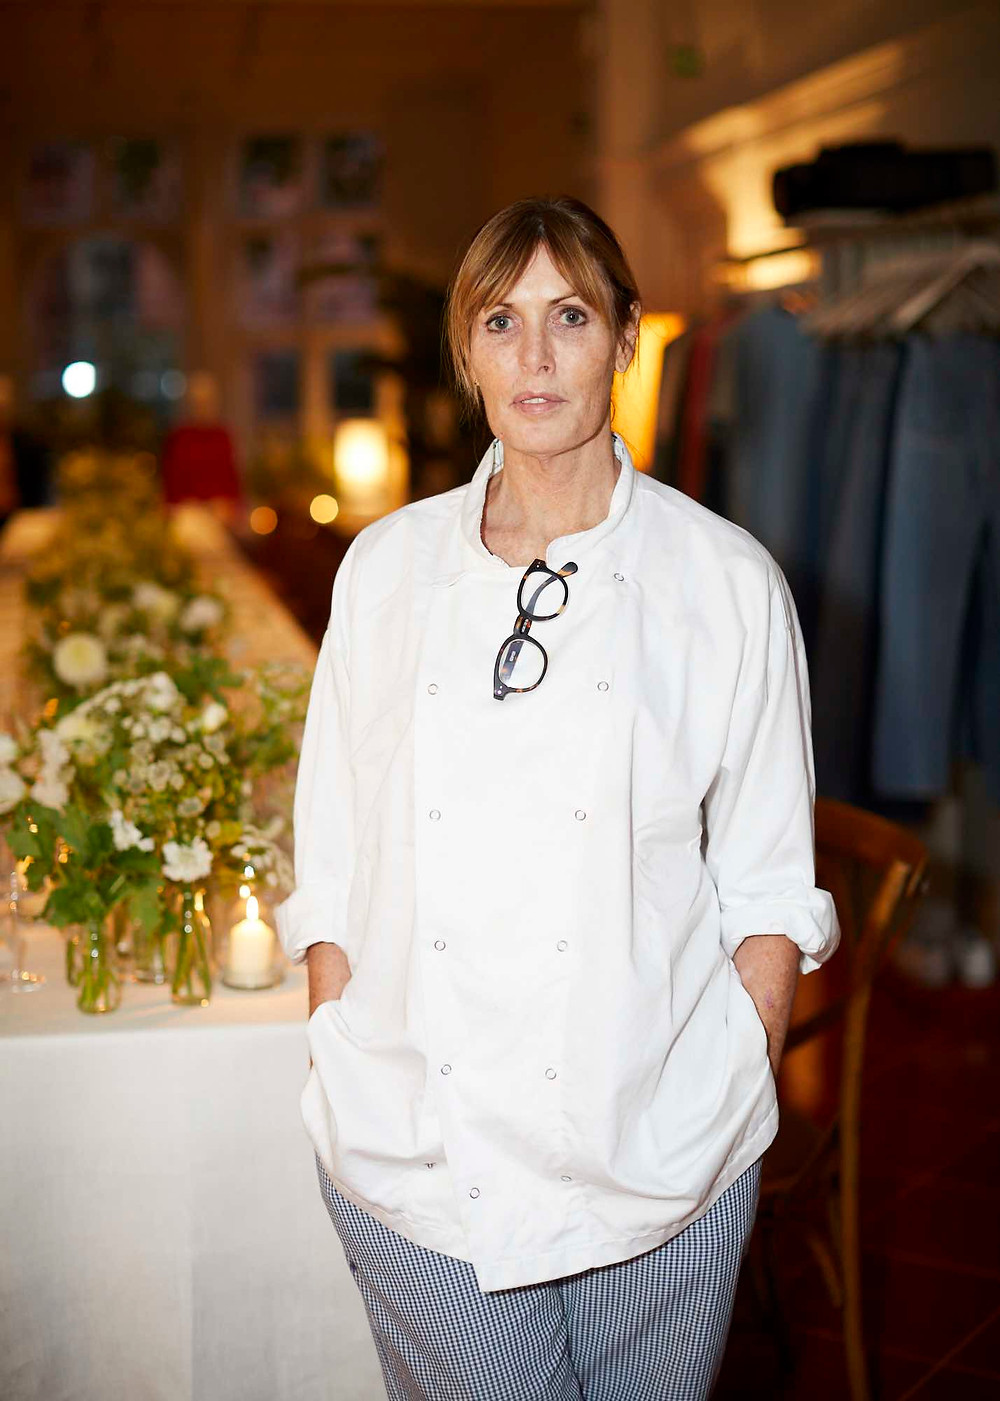 Skye Gyngell at Matches Fashion concept store, 5 Carlos Place in London